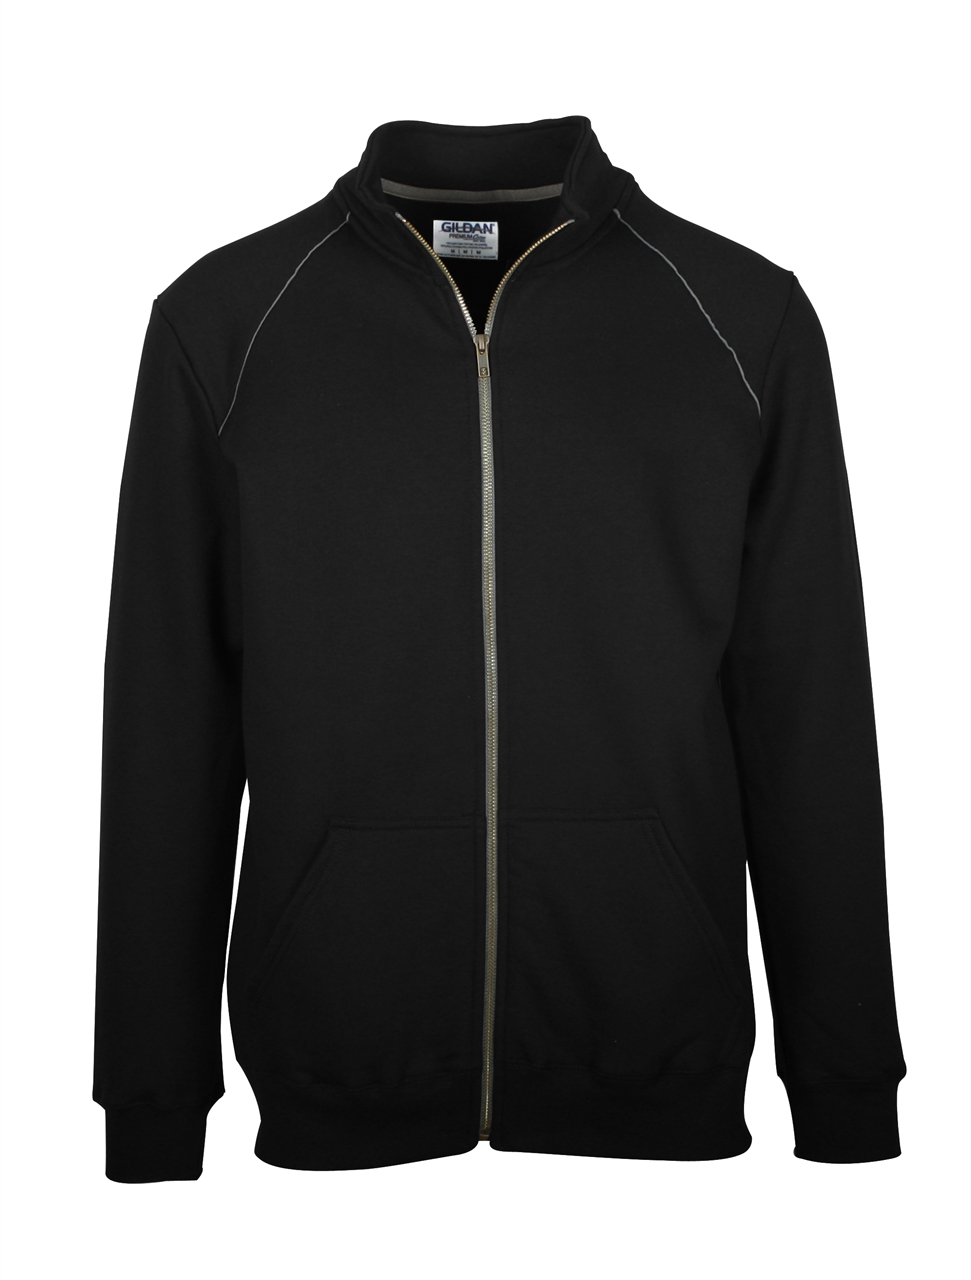 Picture of Gildan Premium Cotton Ring Spun Fleece Full Zip